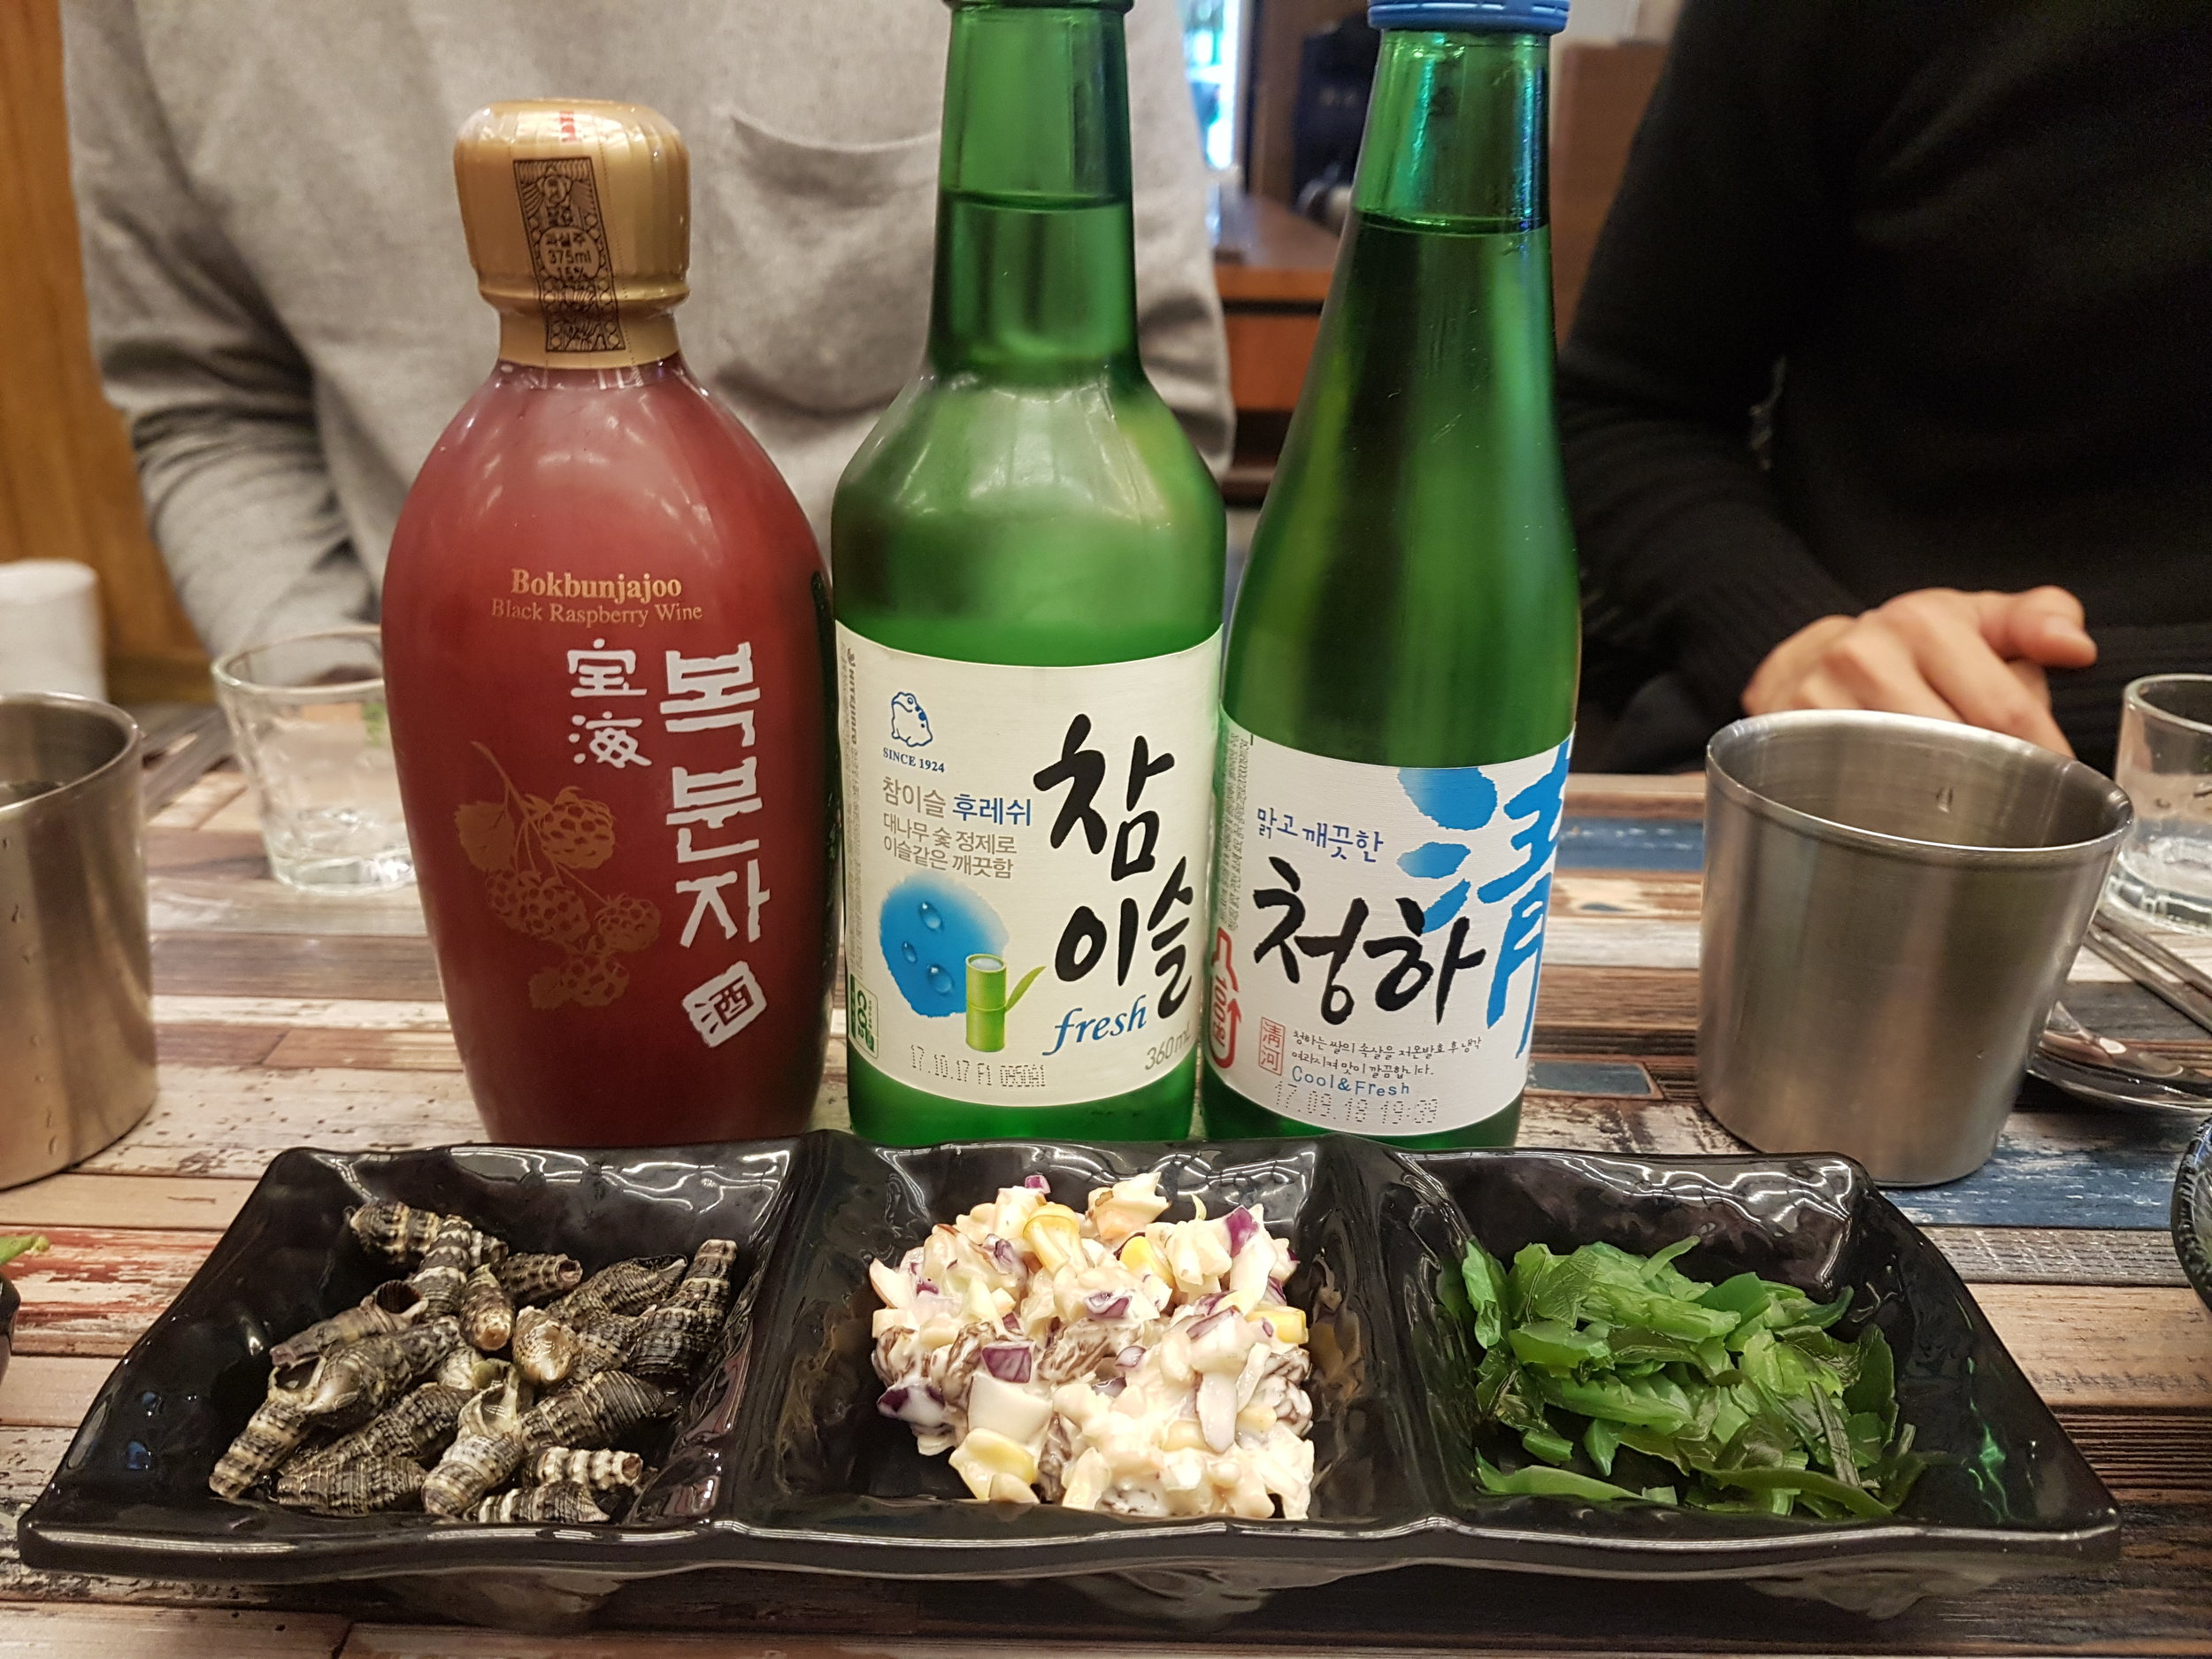 Rasberrywine, fresh soju and another form of soju.